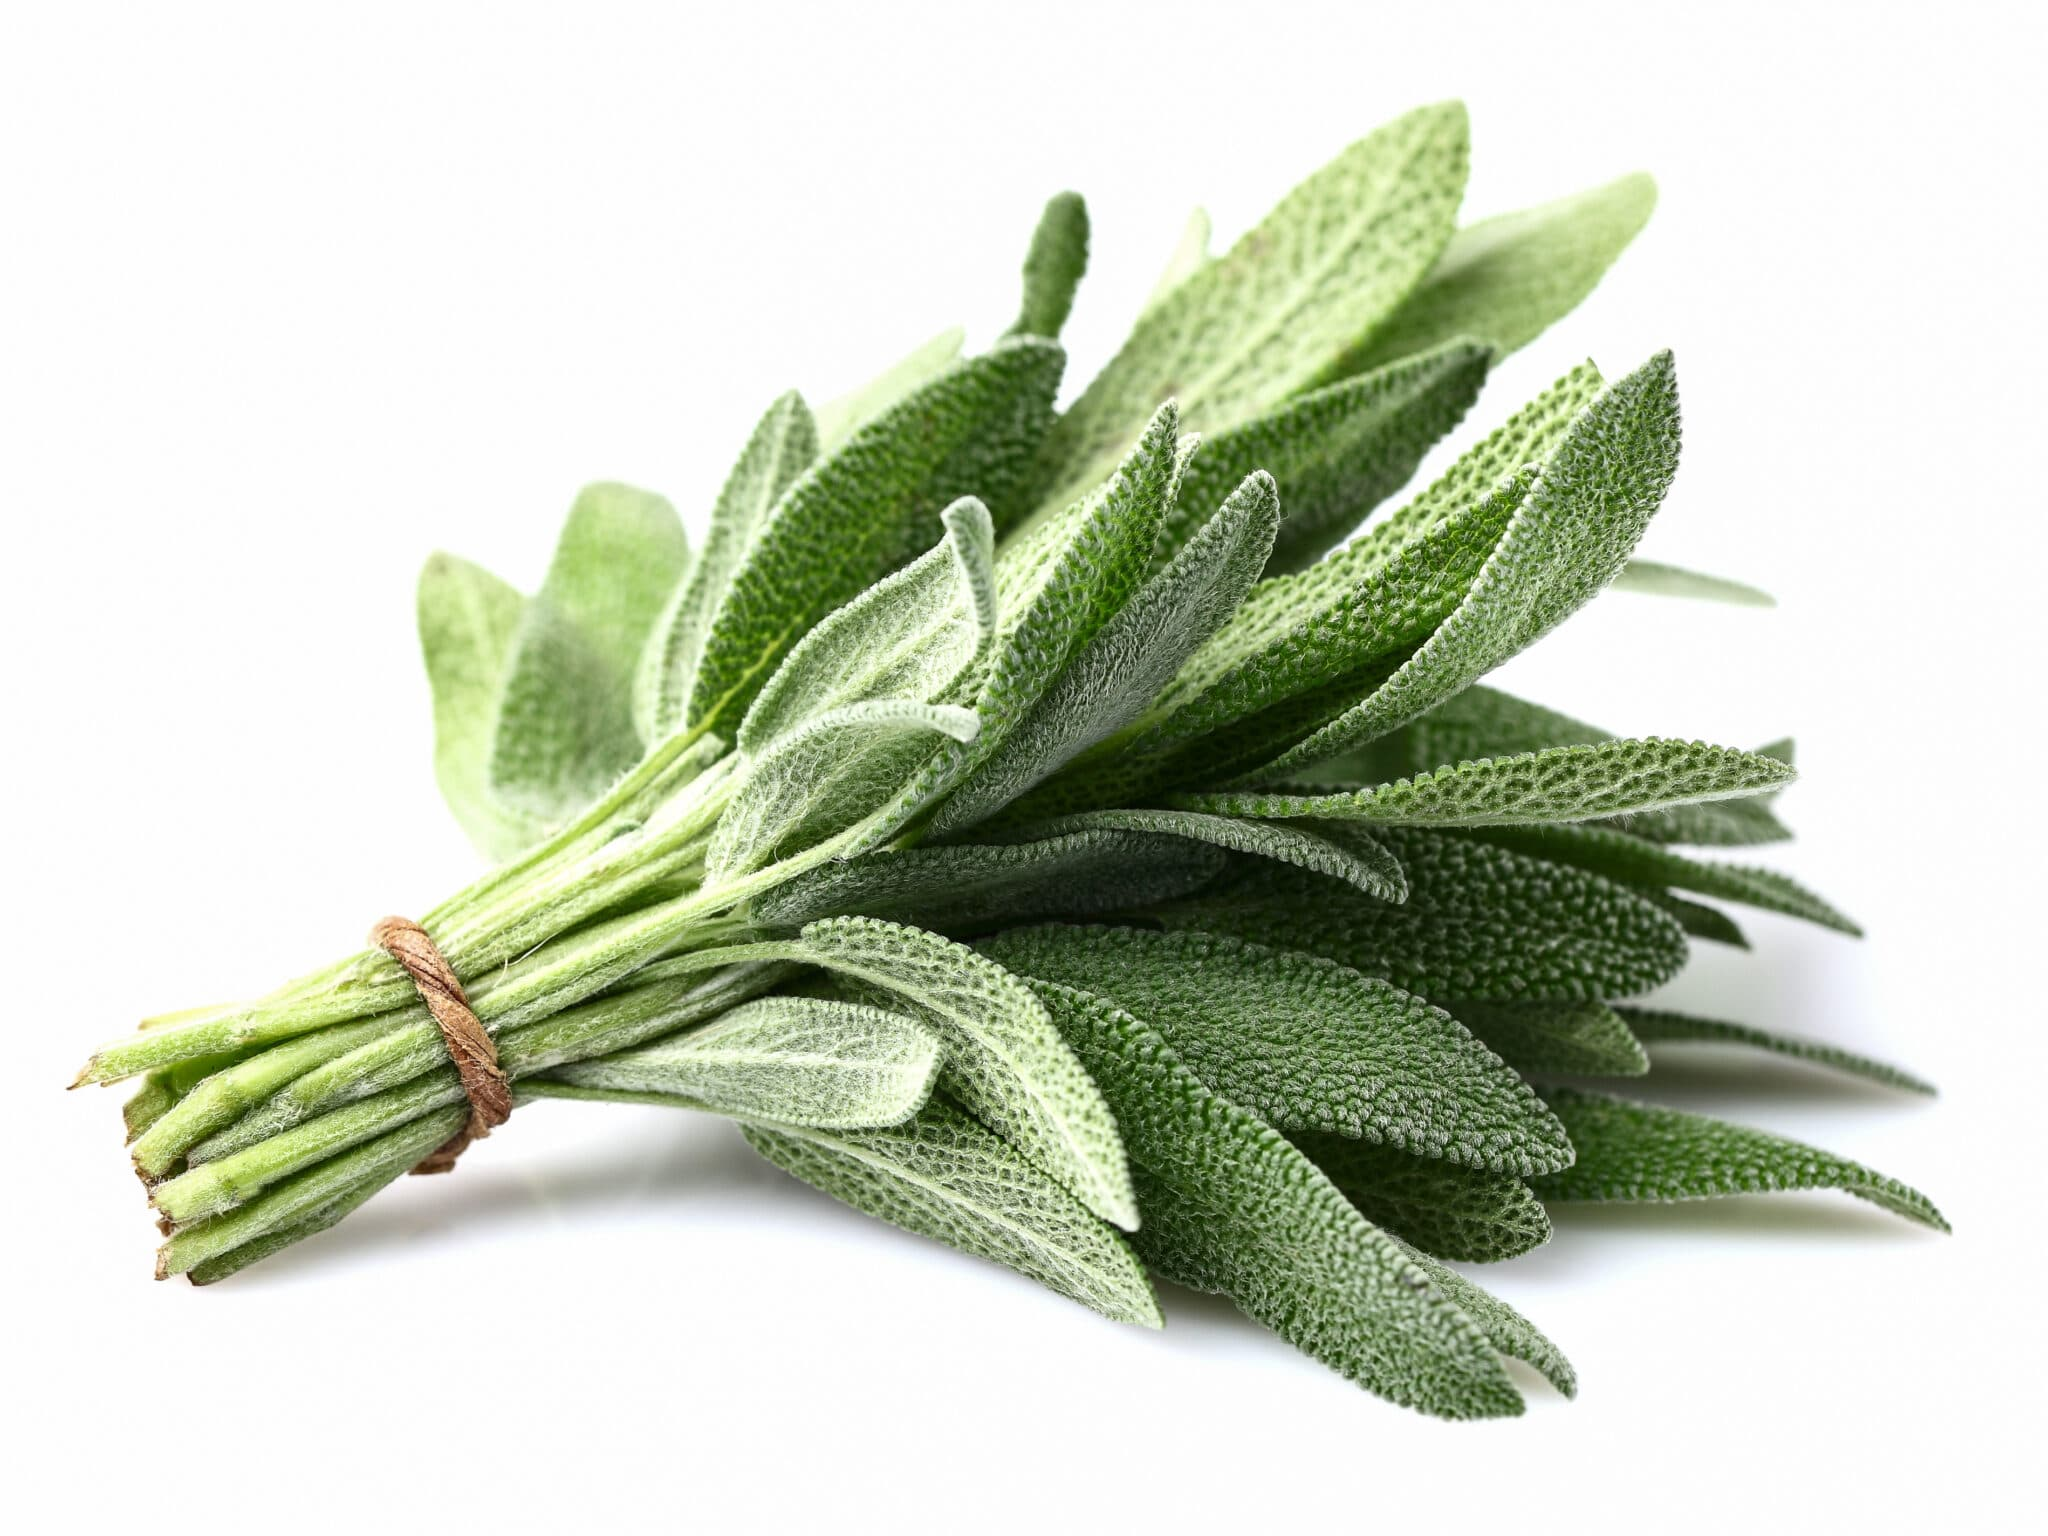 Fresh bunch of bright green sage plant leaves.